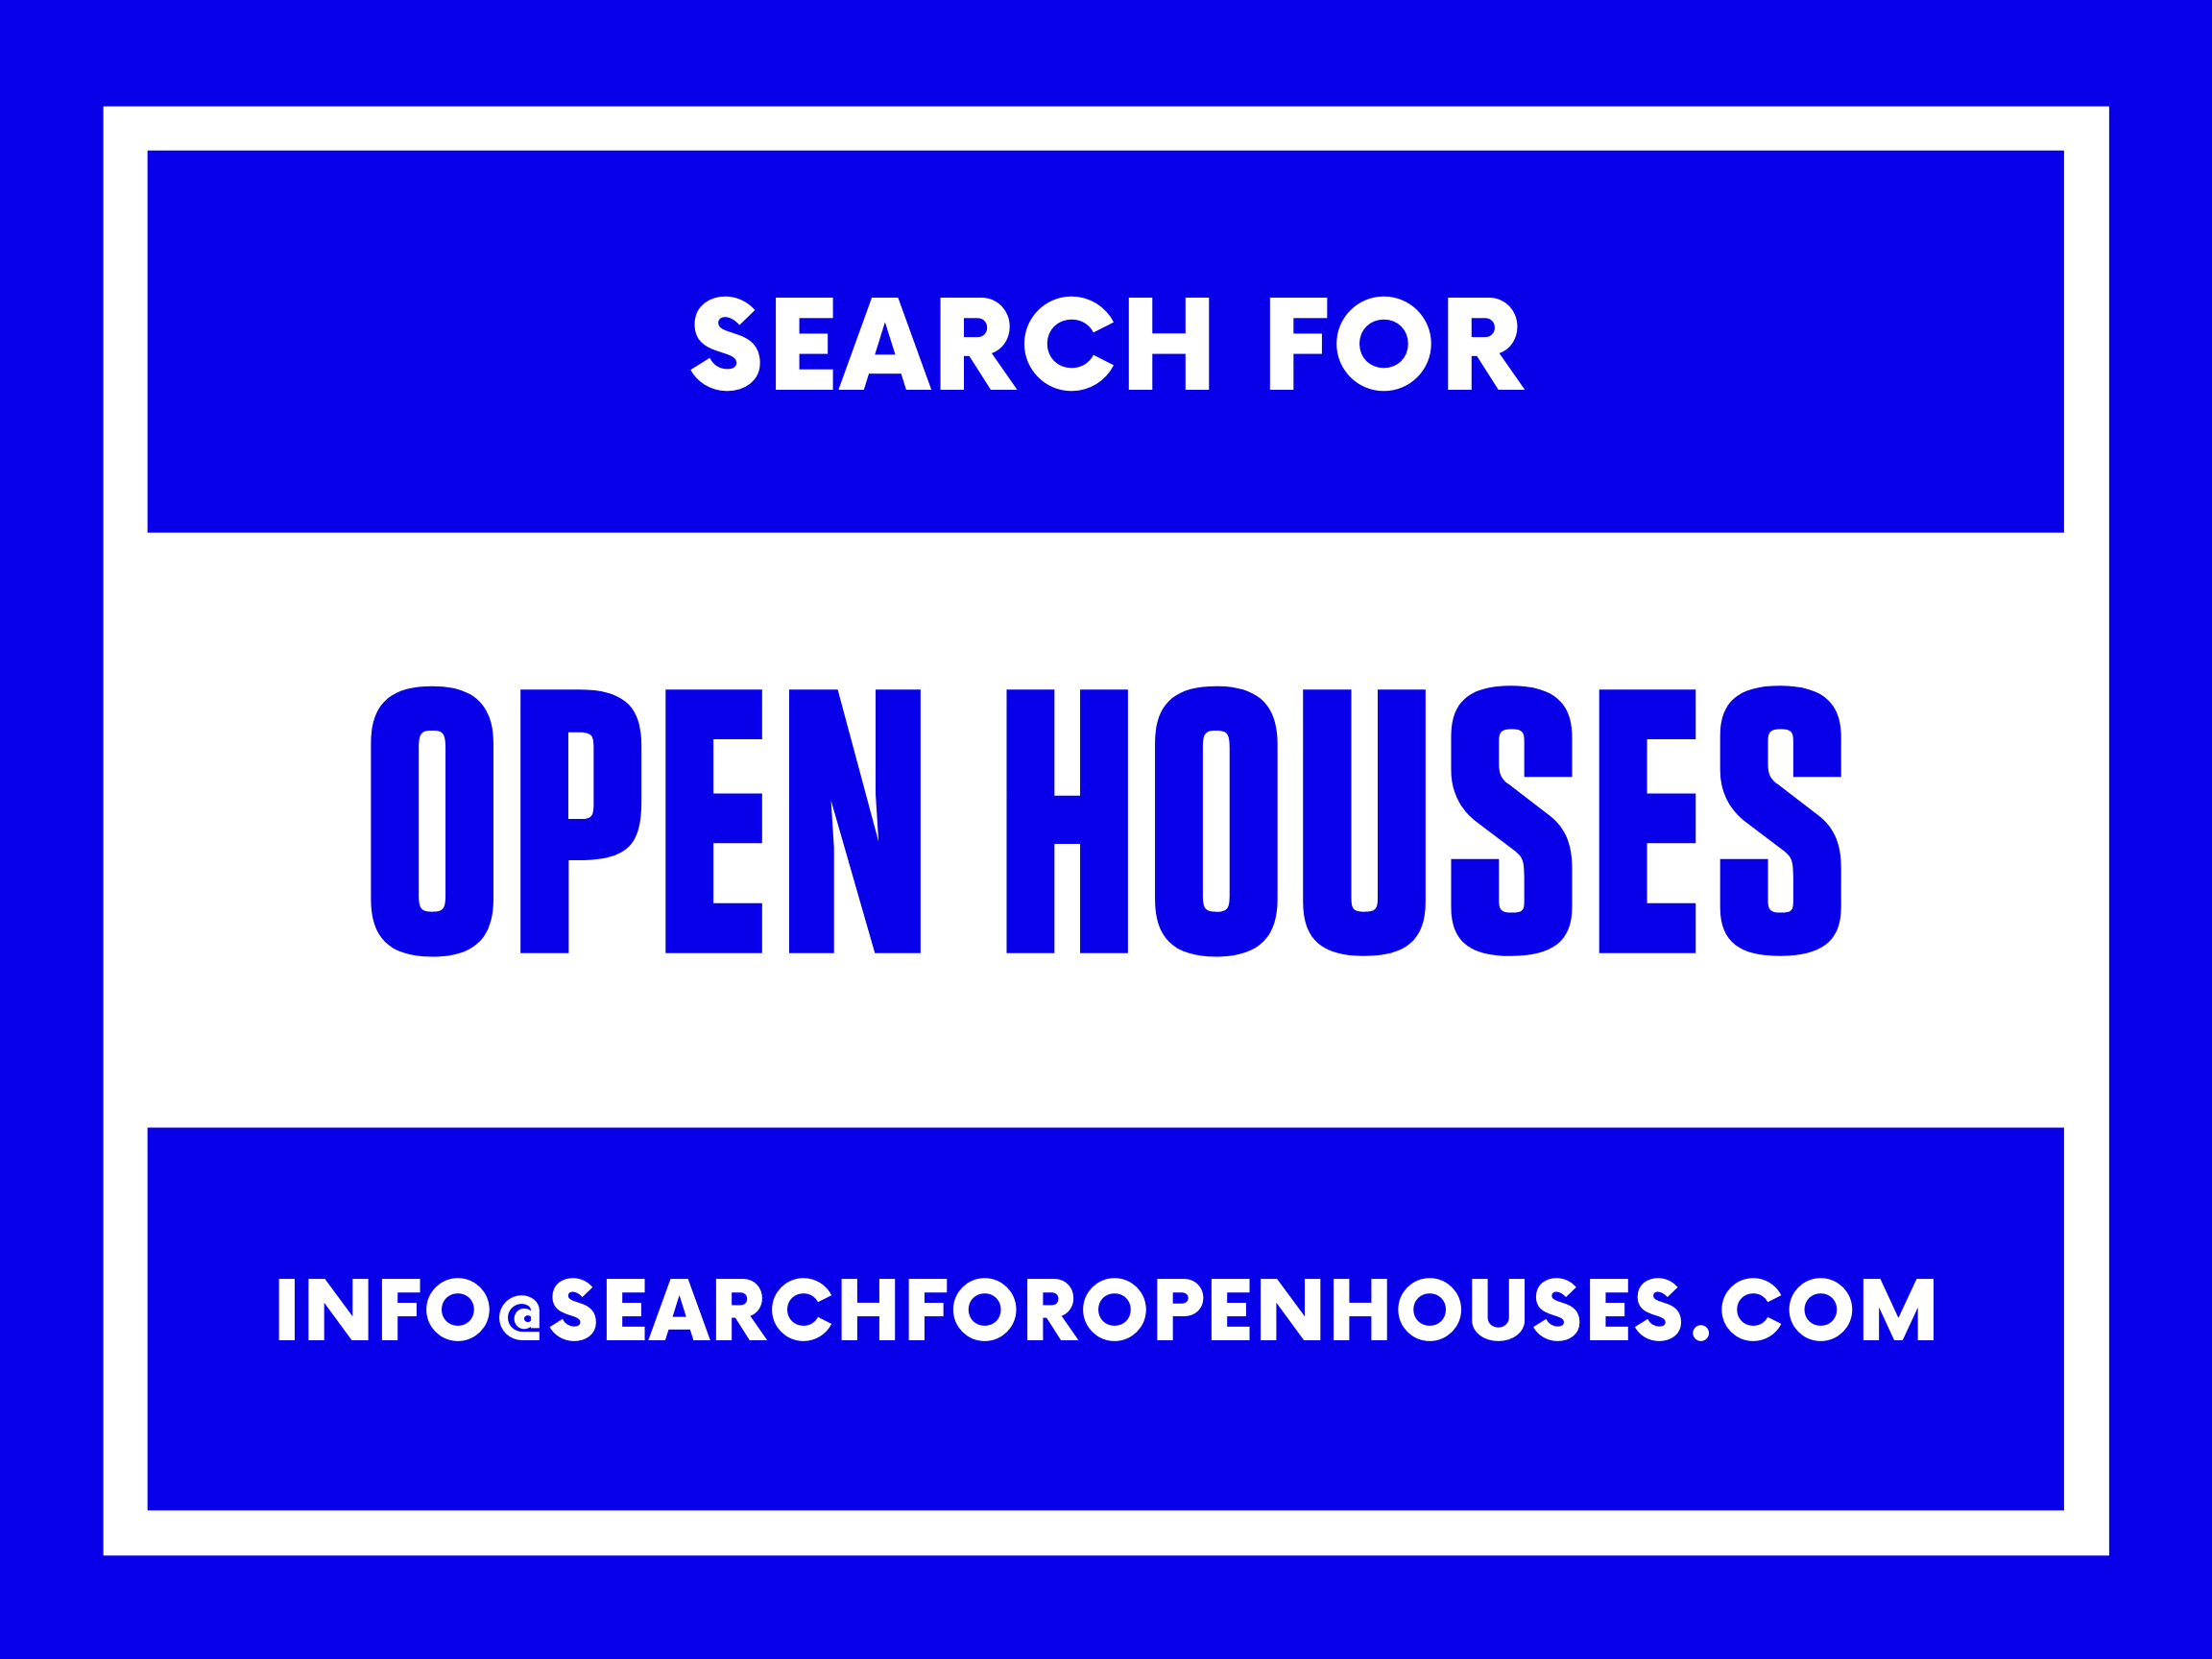 Ready To Attend Open Houses In Your Area Contact Us Today Https Www Searchforopenhouses Com Contact Nyrealestate Open House Contact Us Open